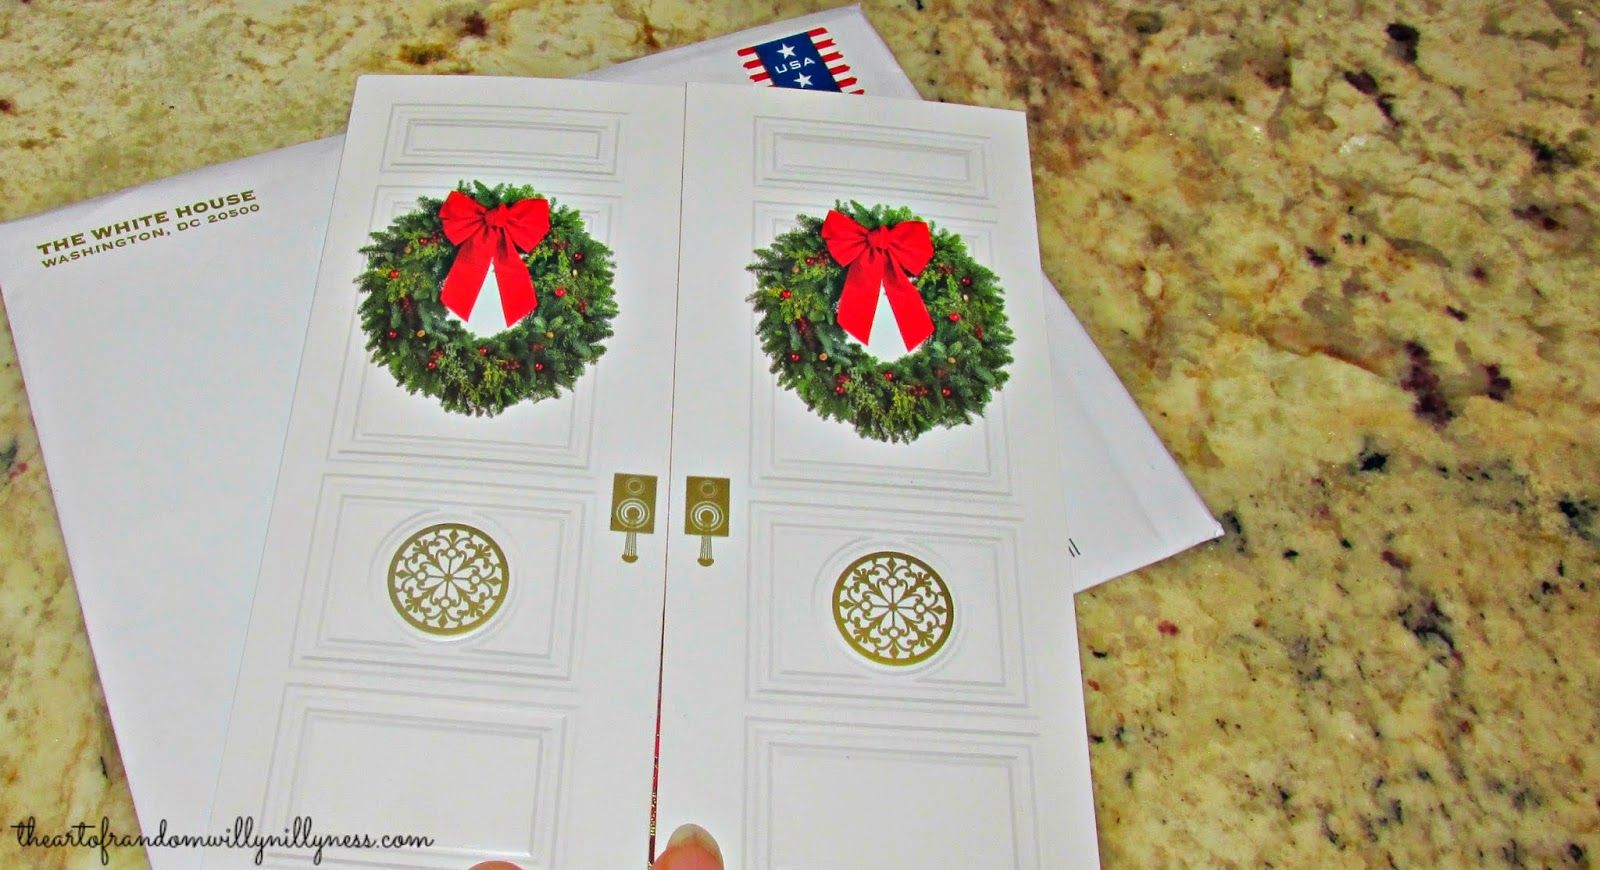 White House Christmas Card (2014) | Exterior appeared as double ...